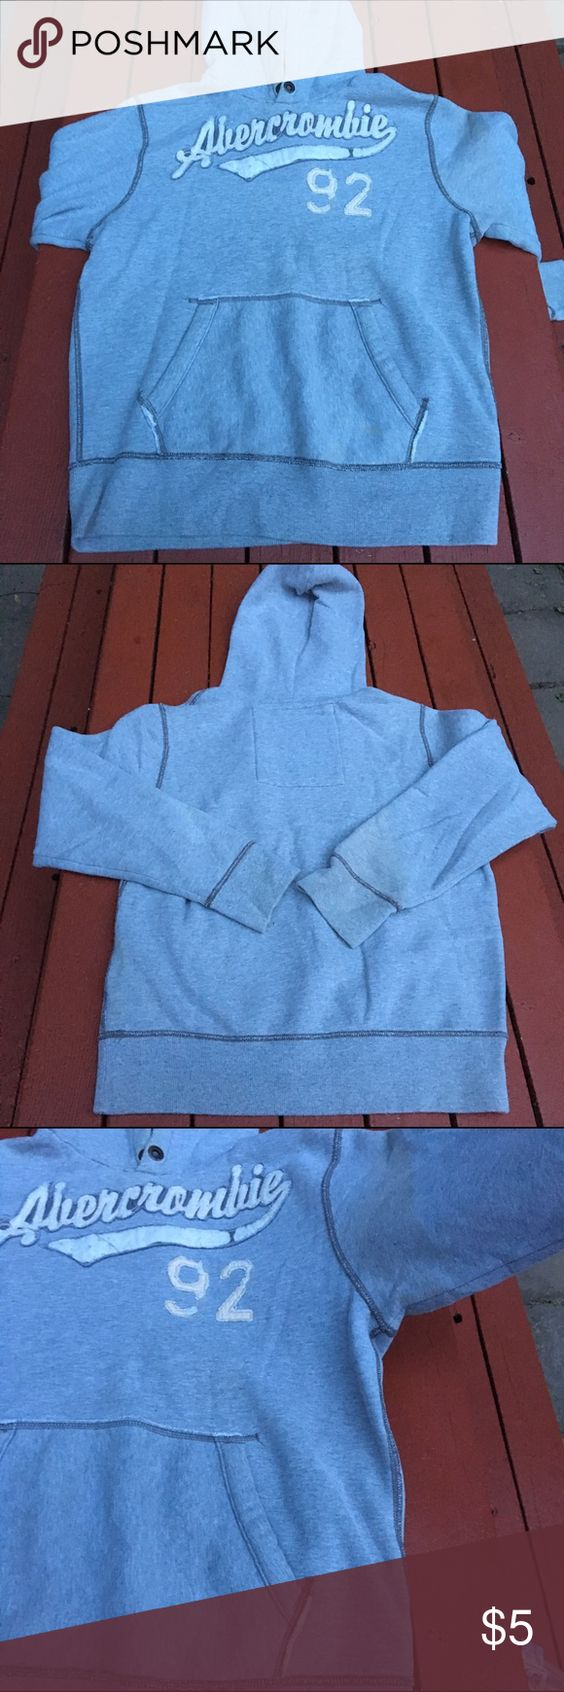 Abercrombie Mens Hoody 3rd picture, flaws. Grey, distressed logo. Abercrombie New York size XL. Abercrombie & Fitch Shirts Sweatshirts & Hoodies